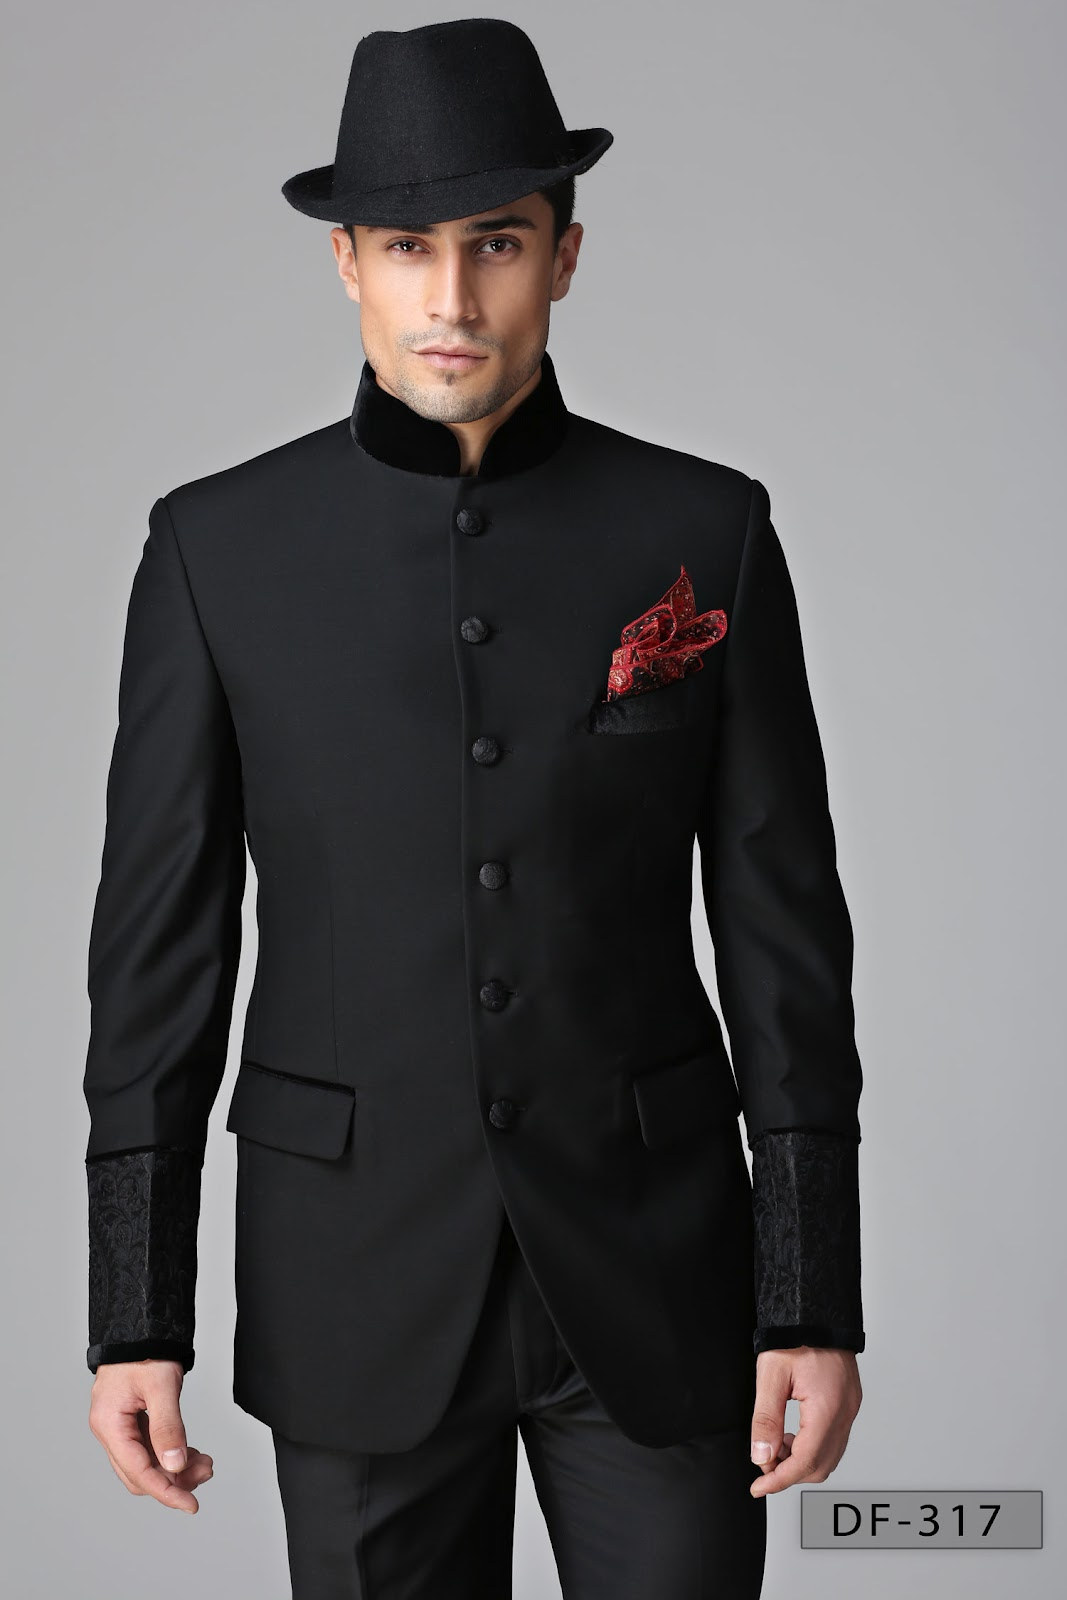 Shop our great selection of men's 3-piece suits! Three-piece suits are a classic addition to your closet – perfect for work, dinner or any occasion. Clothing Connection has a wide array of conservative, high fashion, and urban contemporary designs and labels to match your style as well as the occasion at a discounted sales prices.